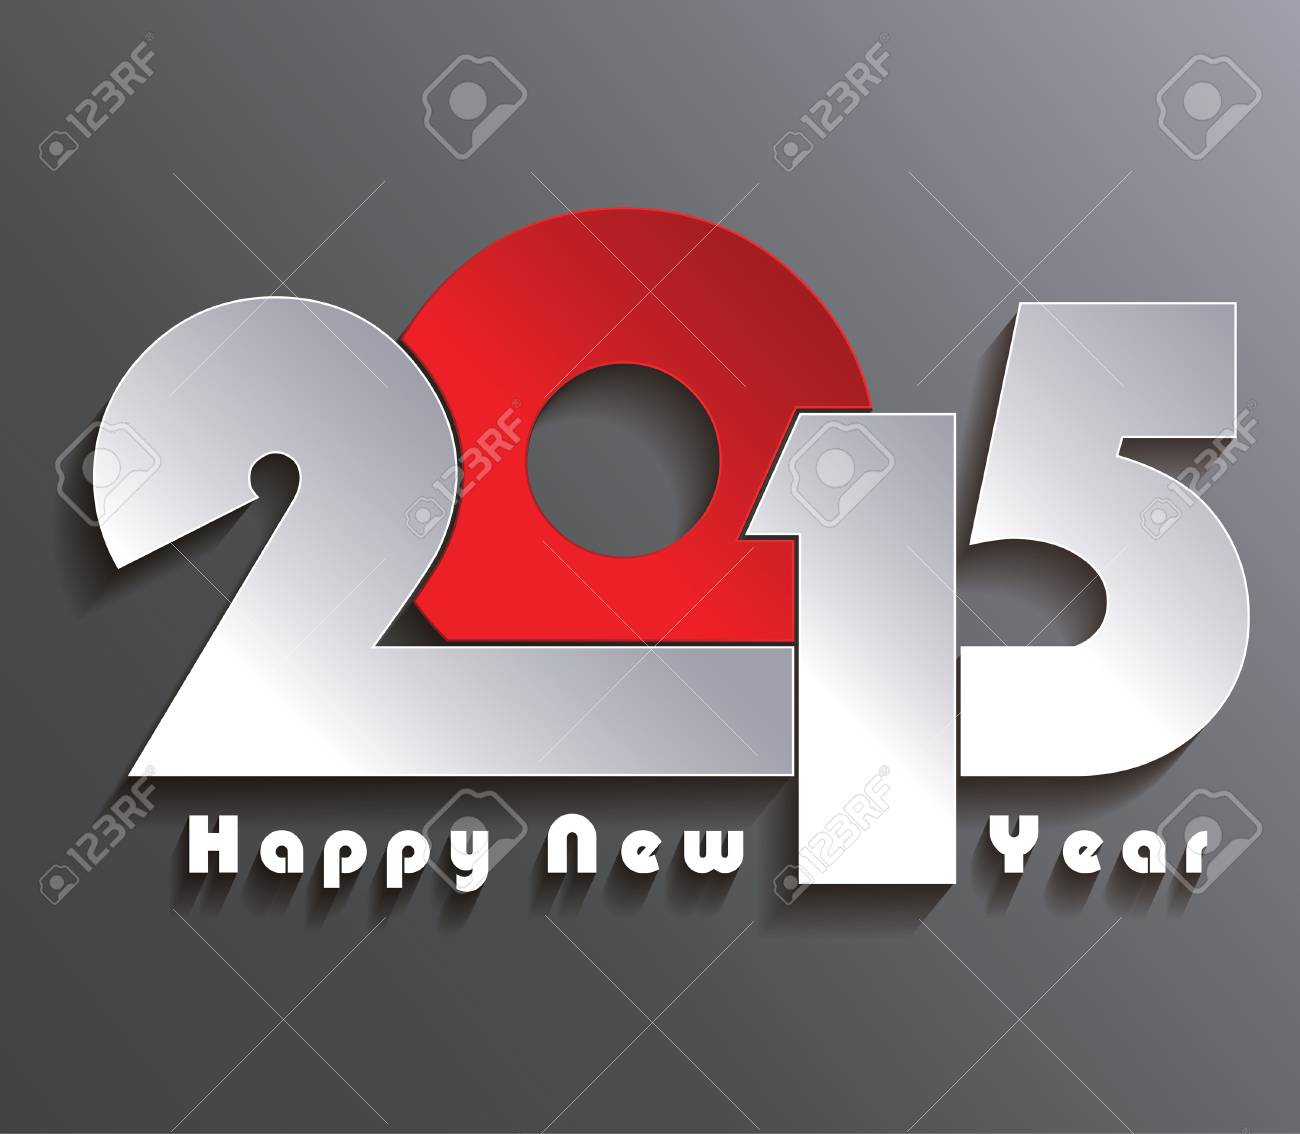 Happy New Year 2015 Creative Greeting Card Design Royalty Free